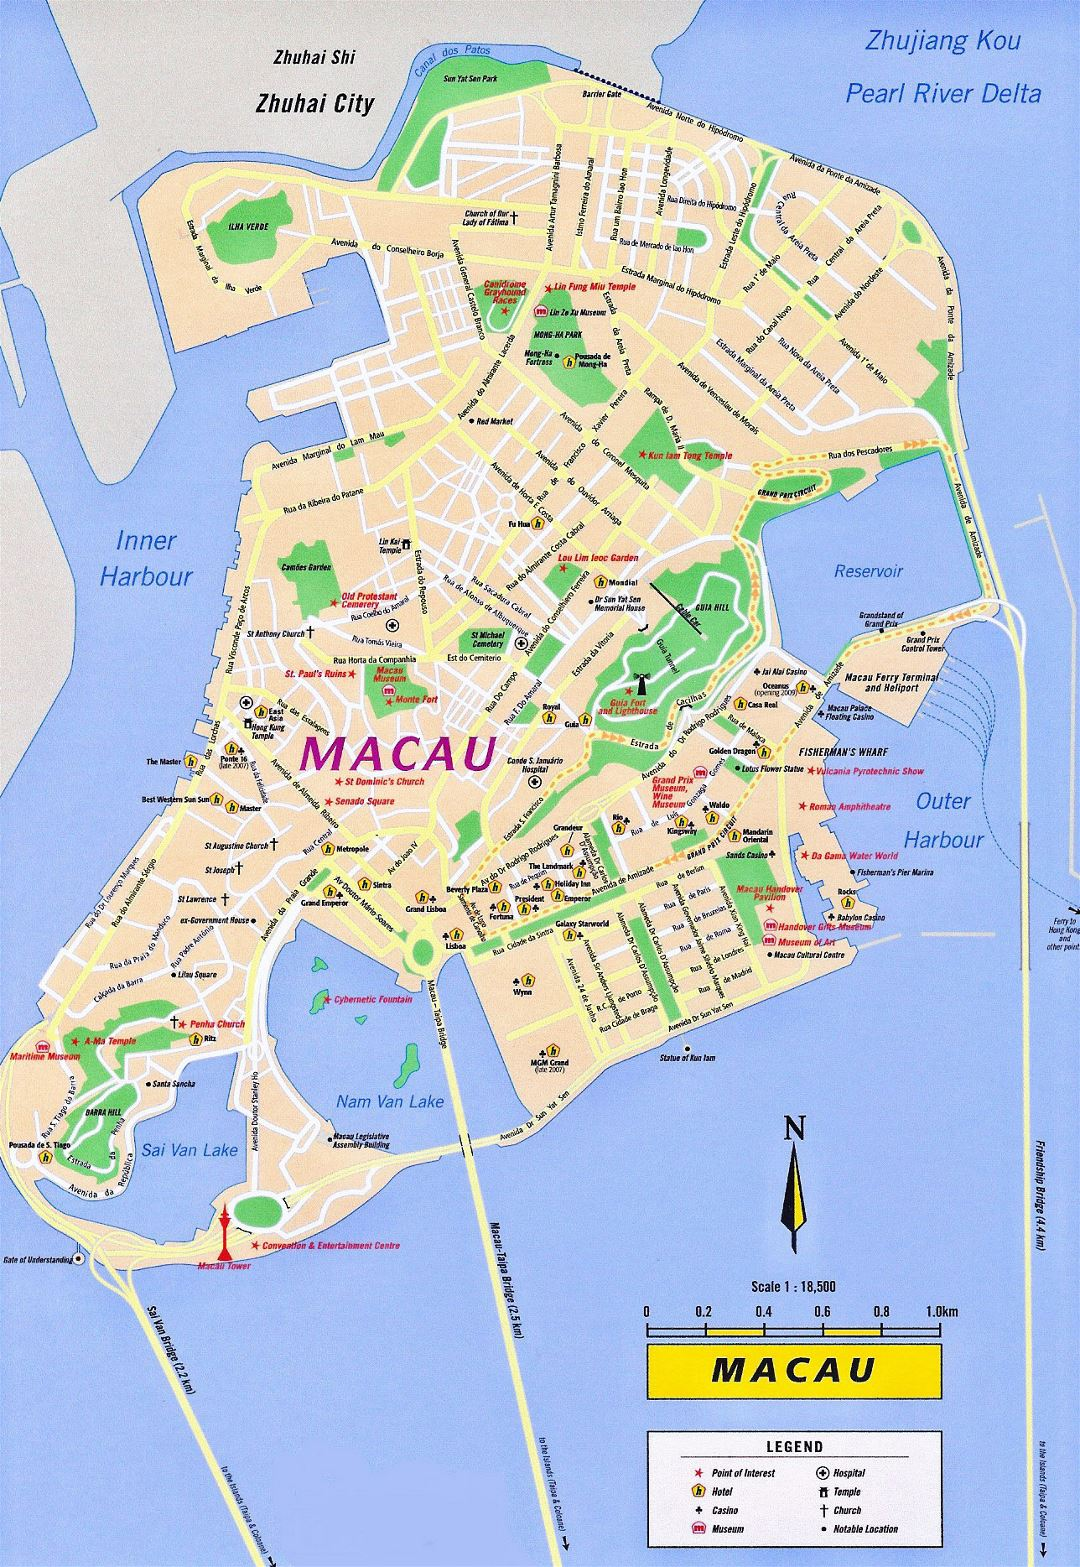 Large tourist map of Macau with roads